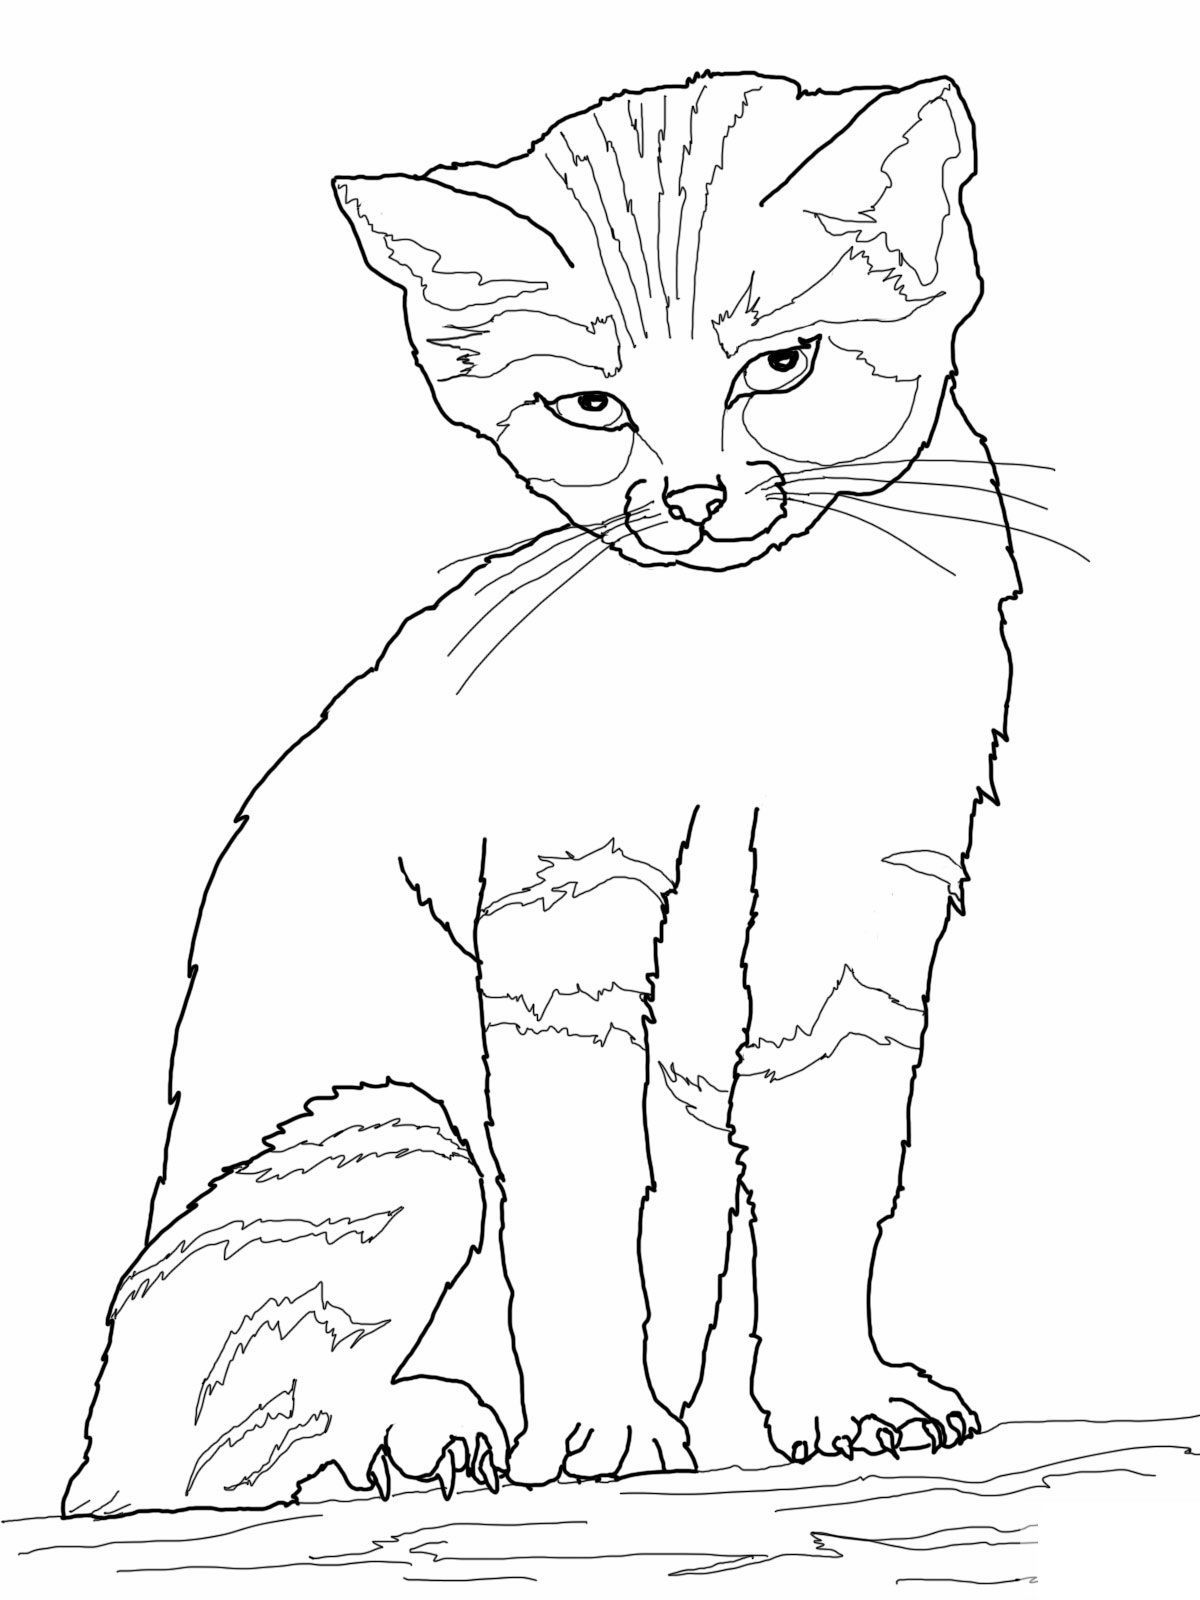 coloring sheet kitty calico cat coloring page at getcoloringscom free coloring sheet kitty